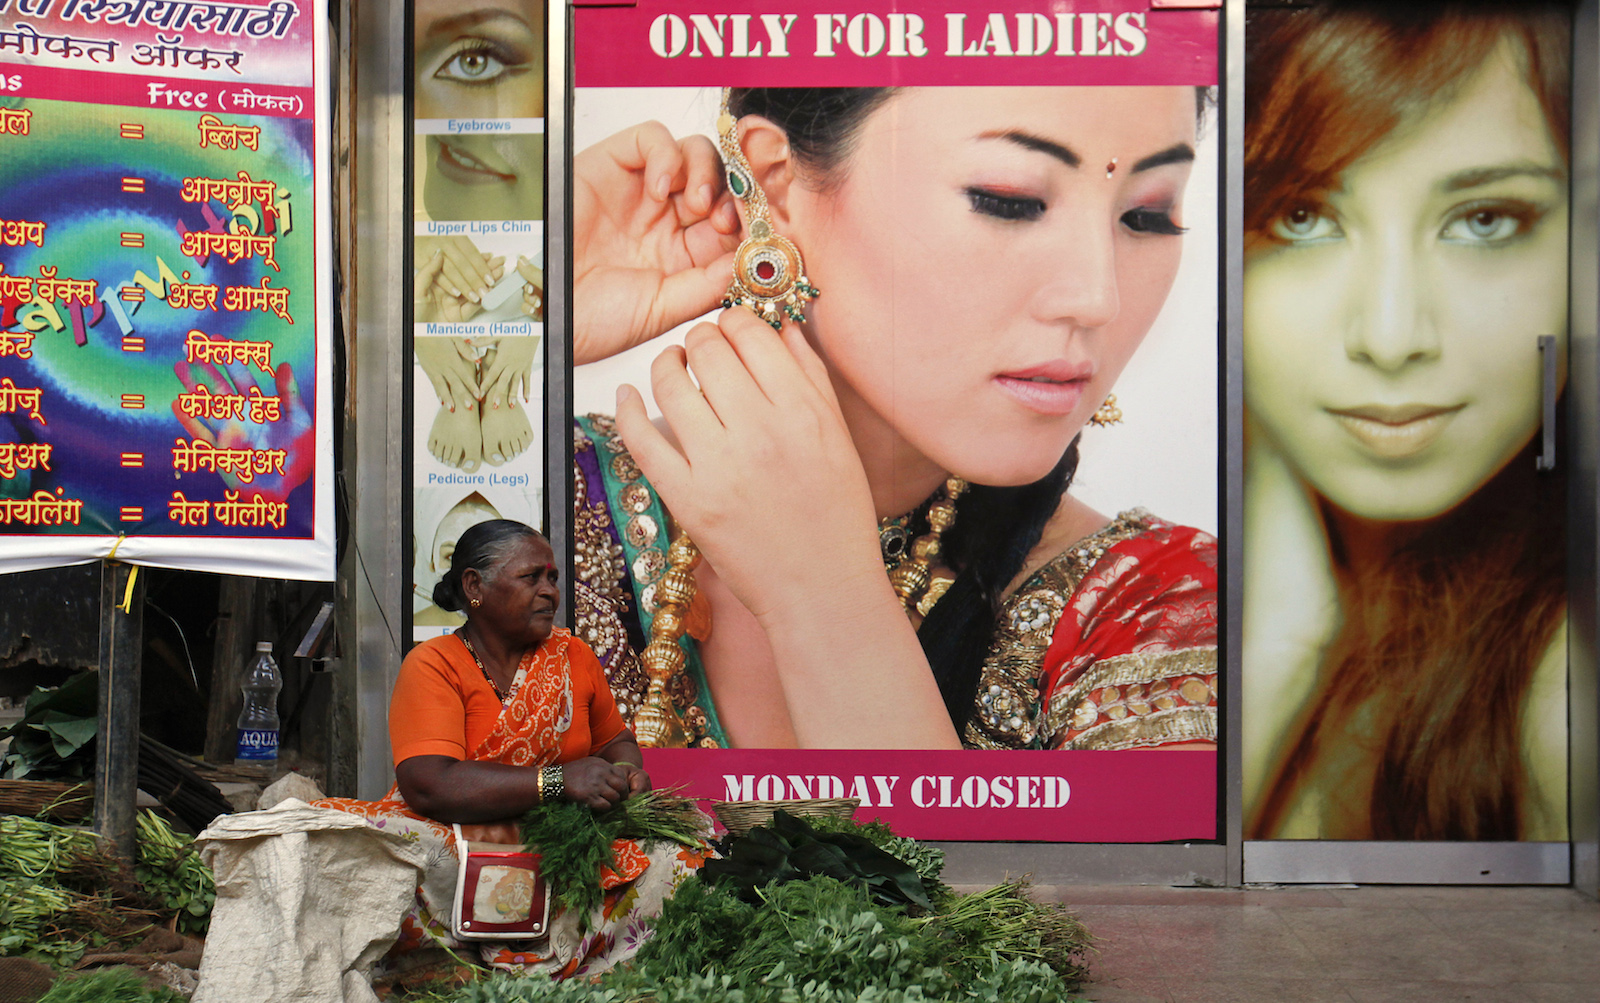 Despite stereotypical marketing, a bank for women can really help Indian business,